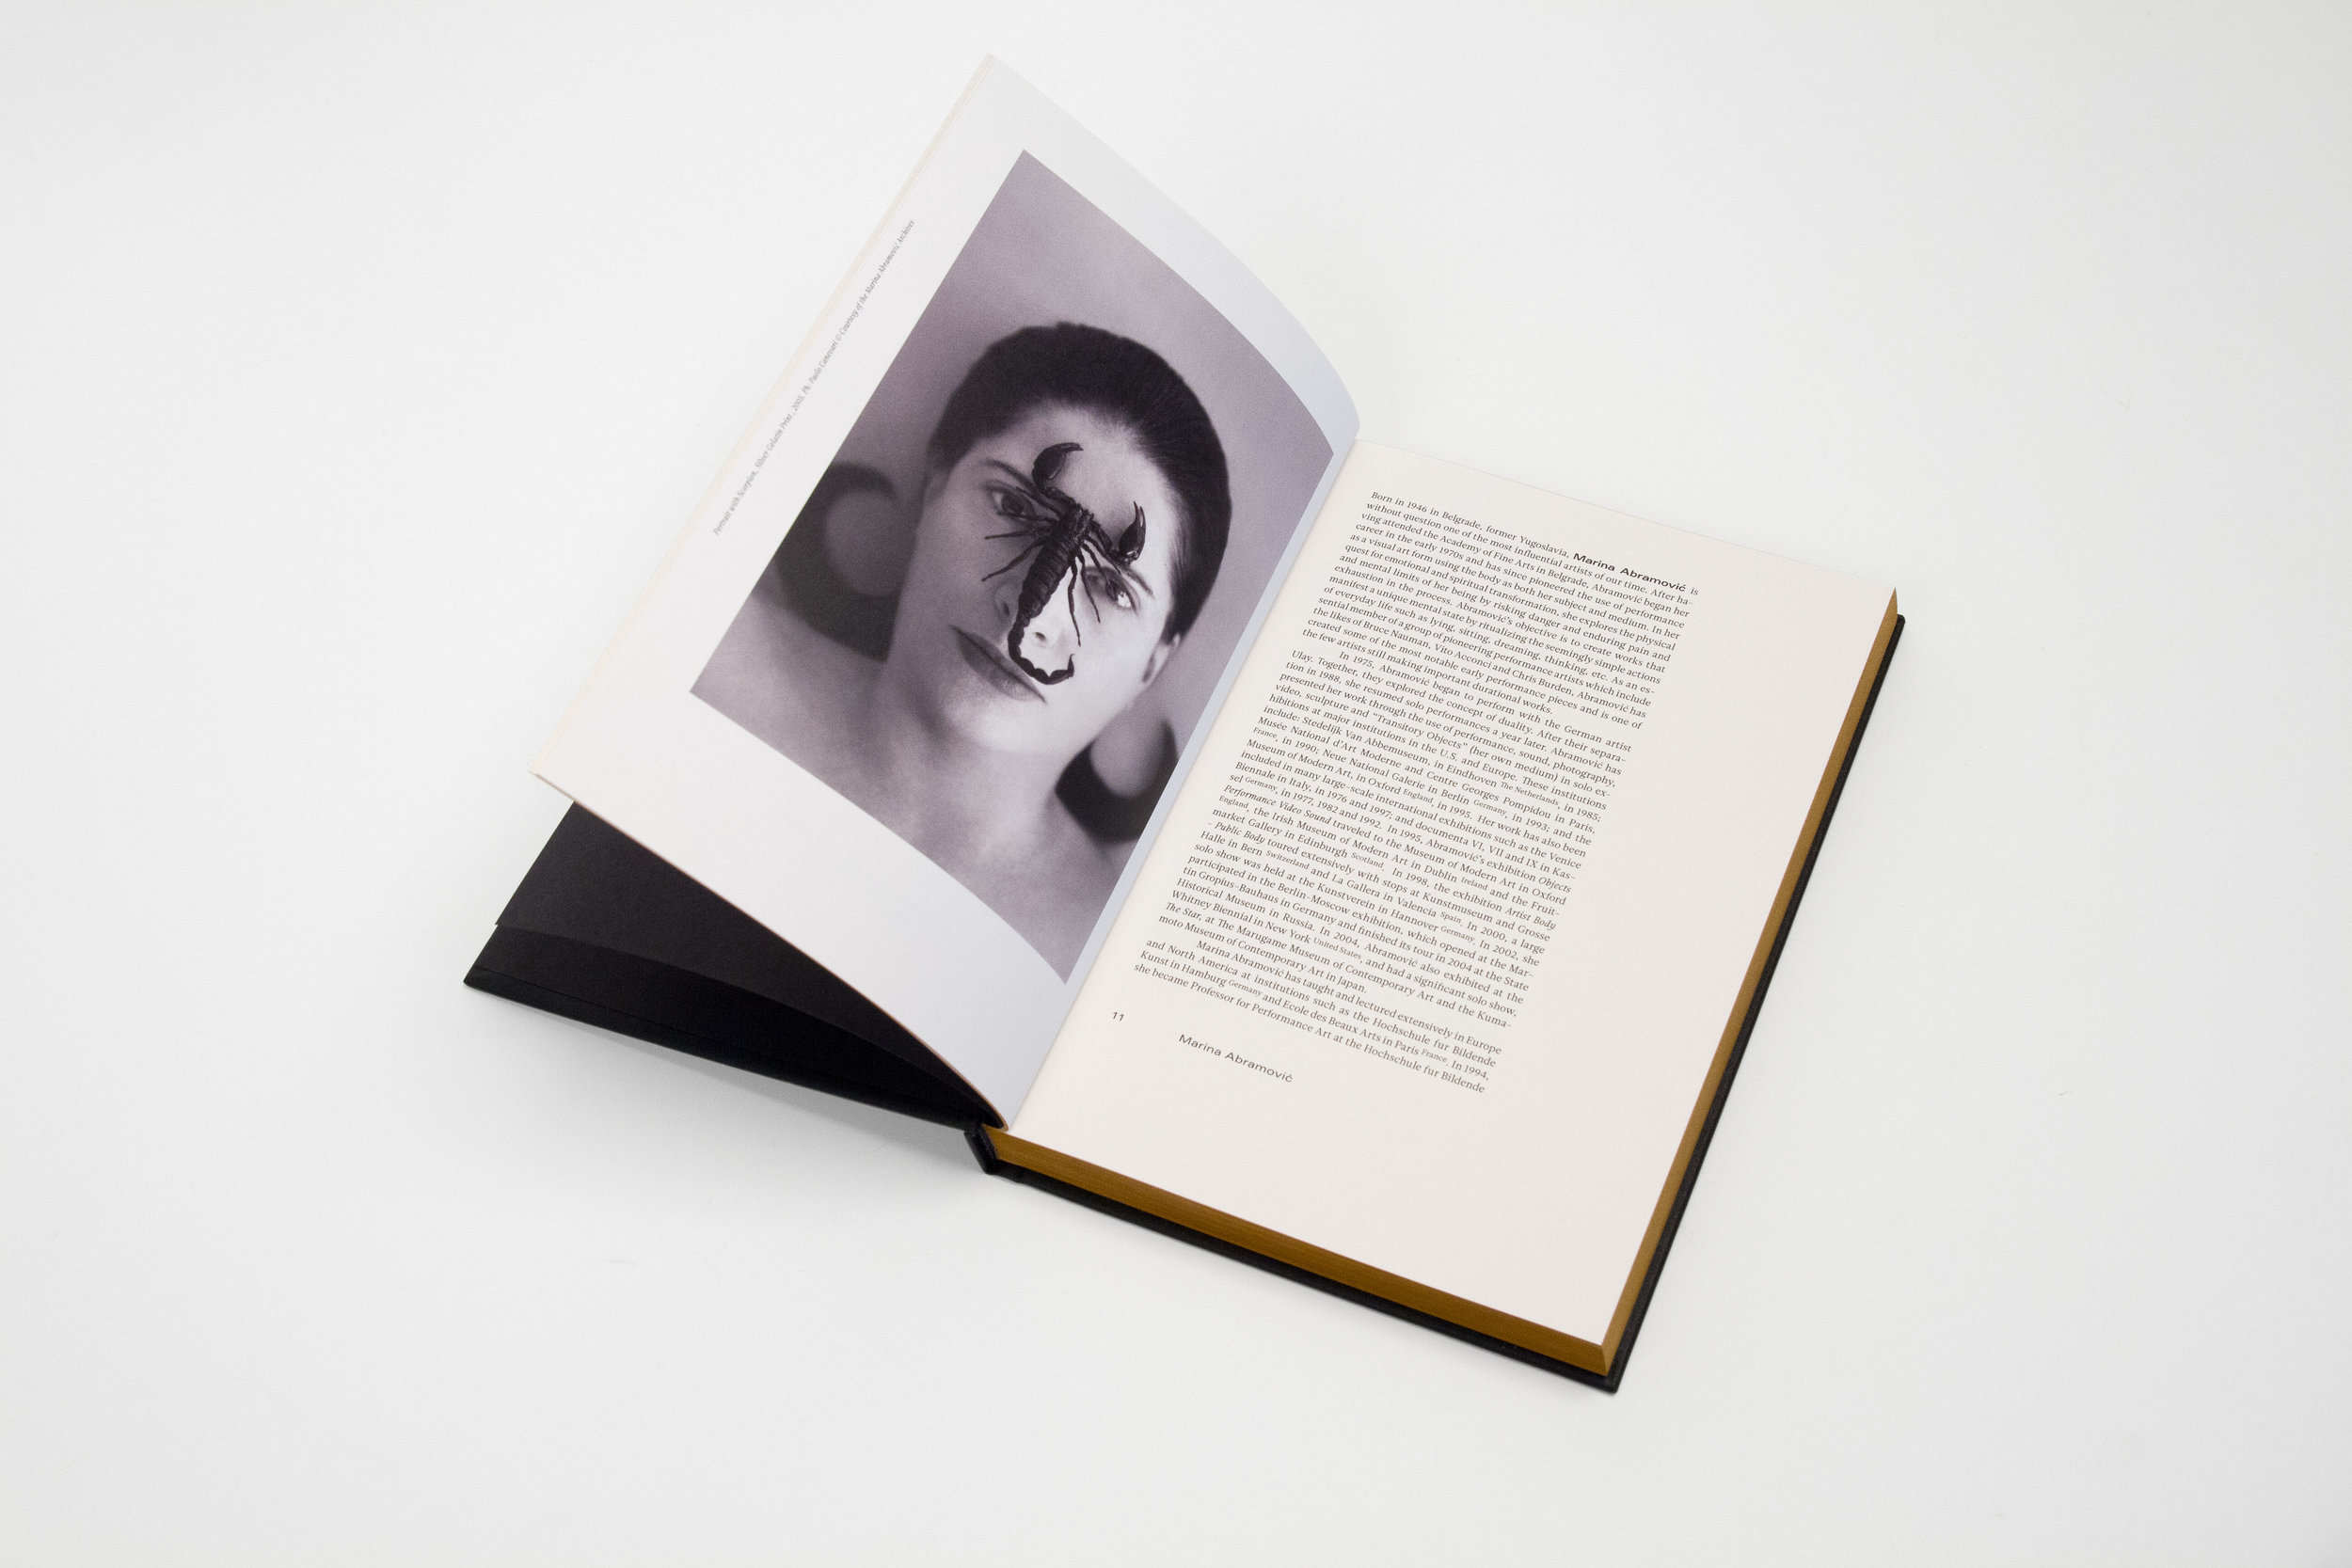 Portrait of an Artist, by Hugo Huerta Marin Published by Anteism 216 pg (Colour, Digital) 6.5 in x 9.5 in - 16.5 cm x 24 cm Hardcover (available in softcover) - Perfect binding Screenprinted cover